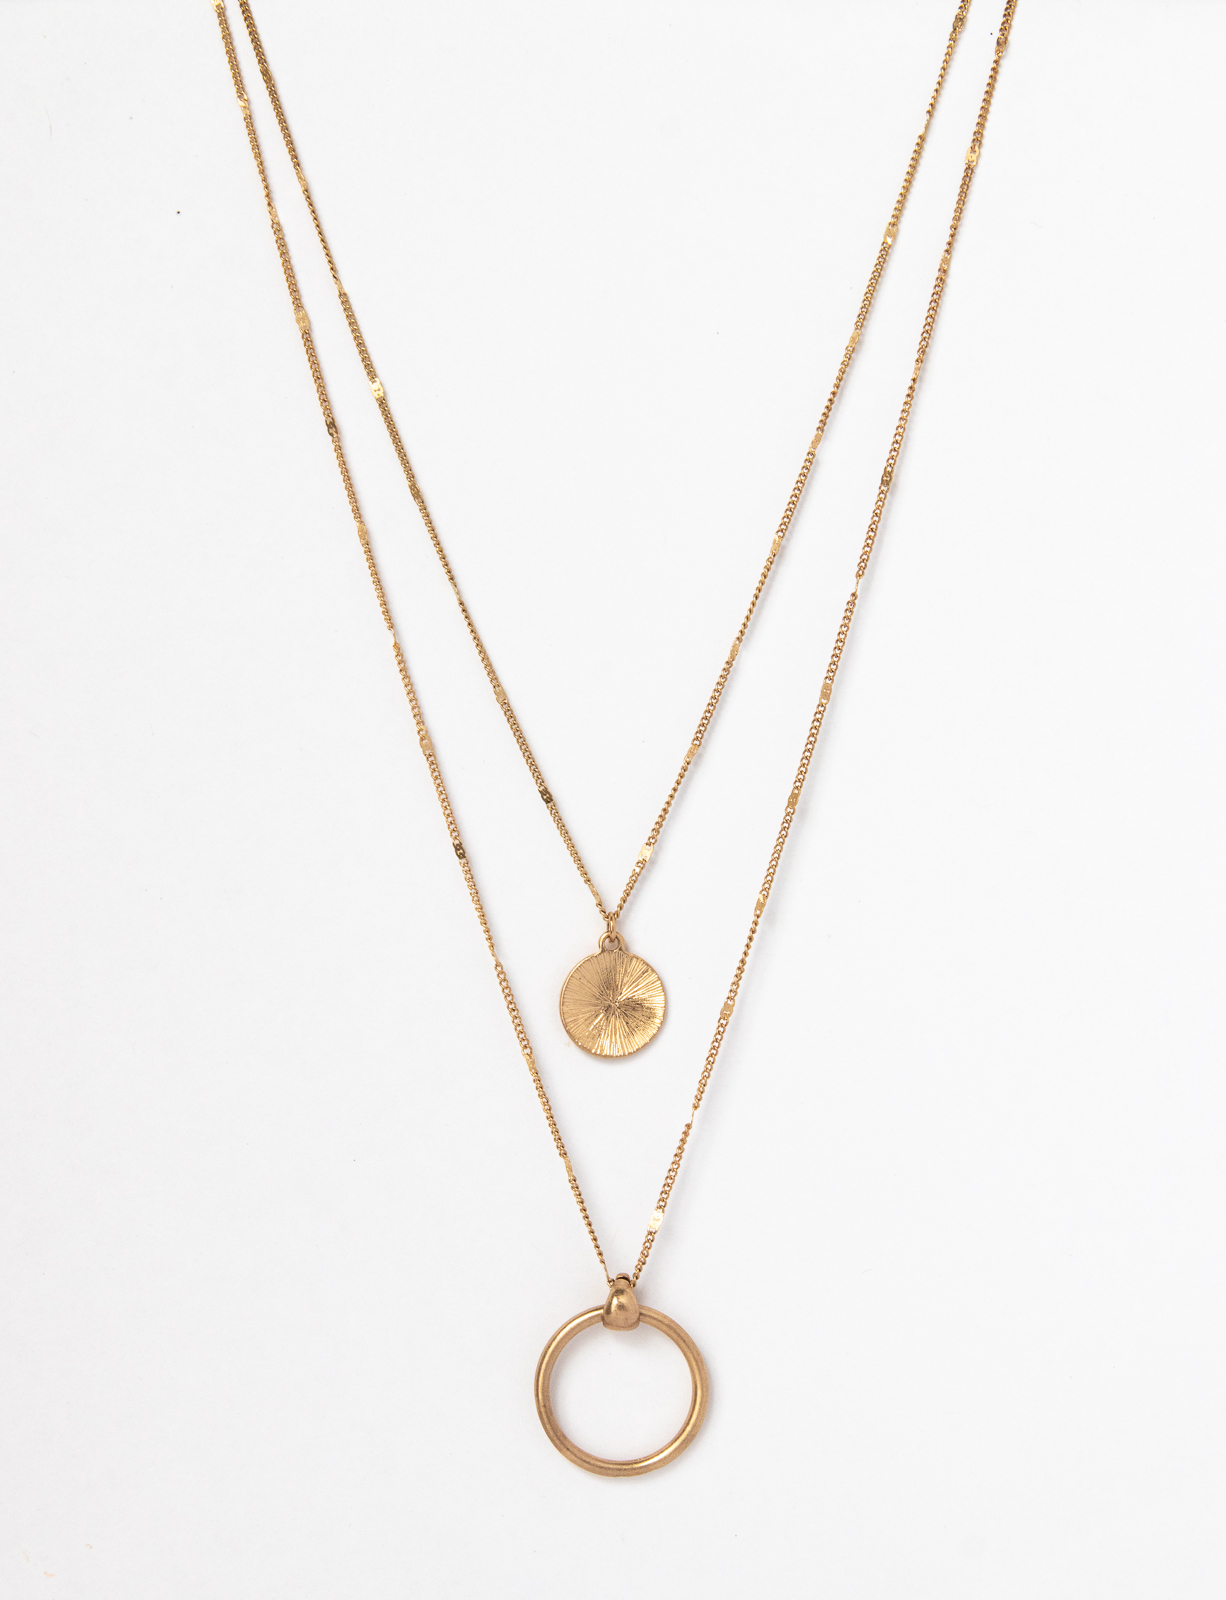 necklace-44.jpg